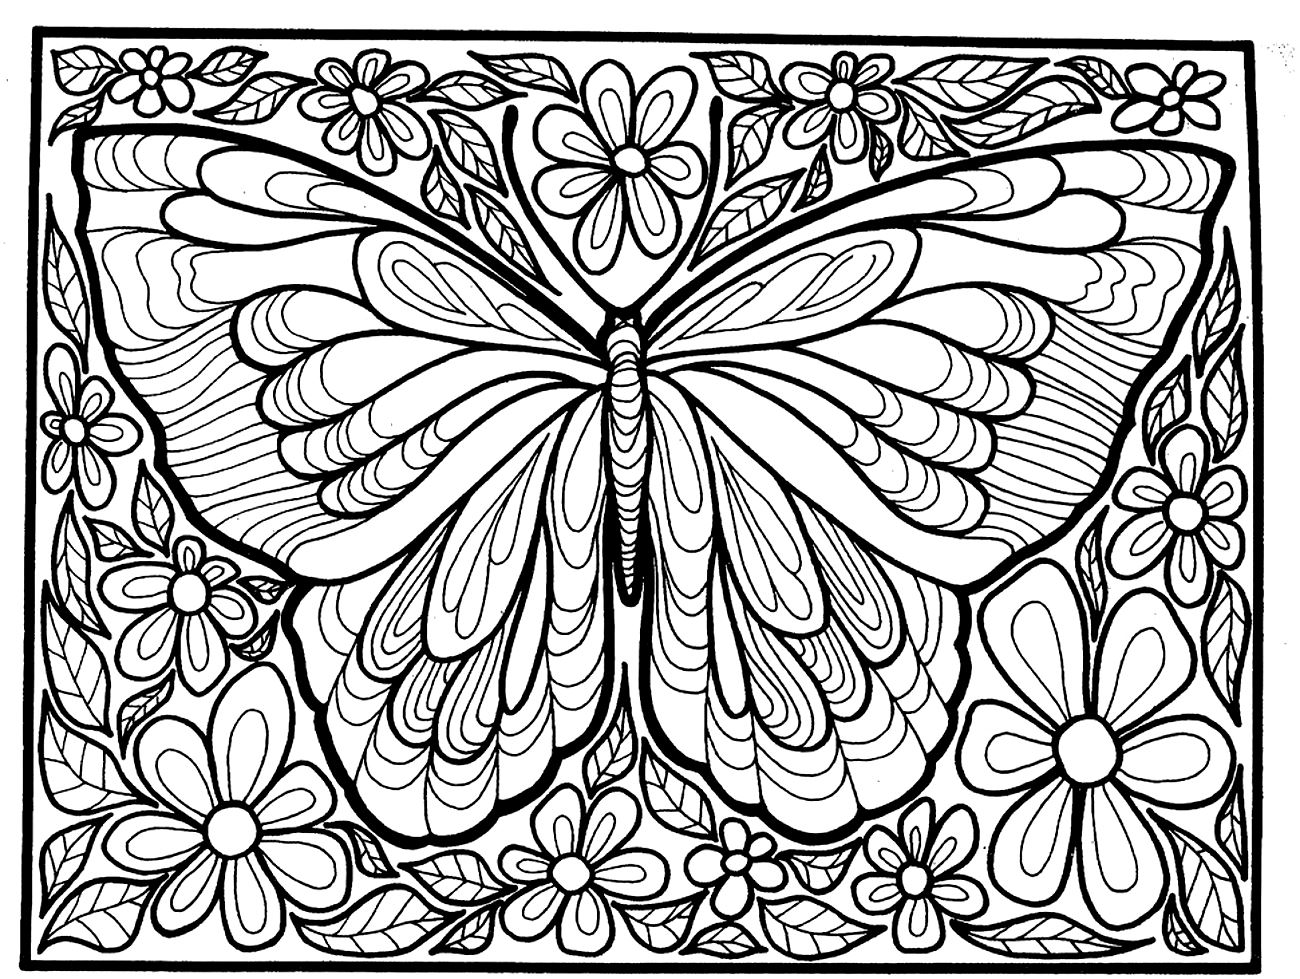 adult coloring pages butterflies Big butterfly   Butterflies & insects Adult Coloring Pages adult coloring pages butterflies